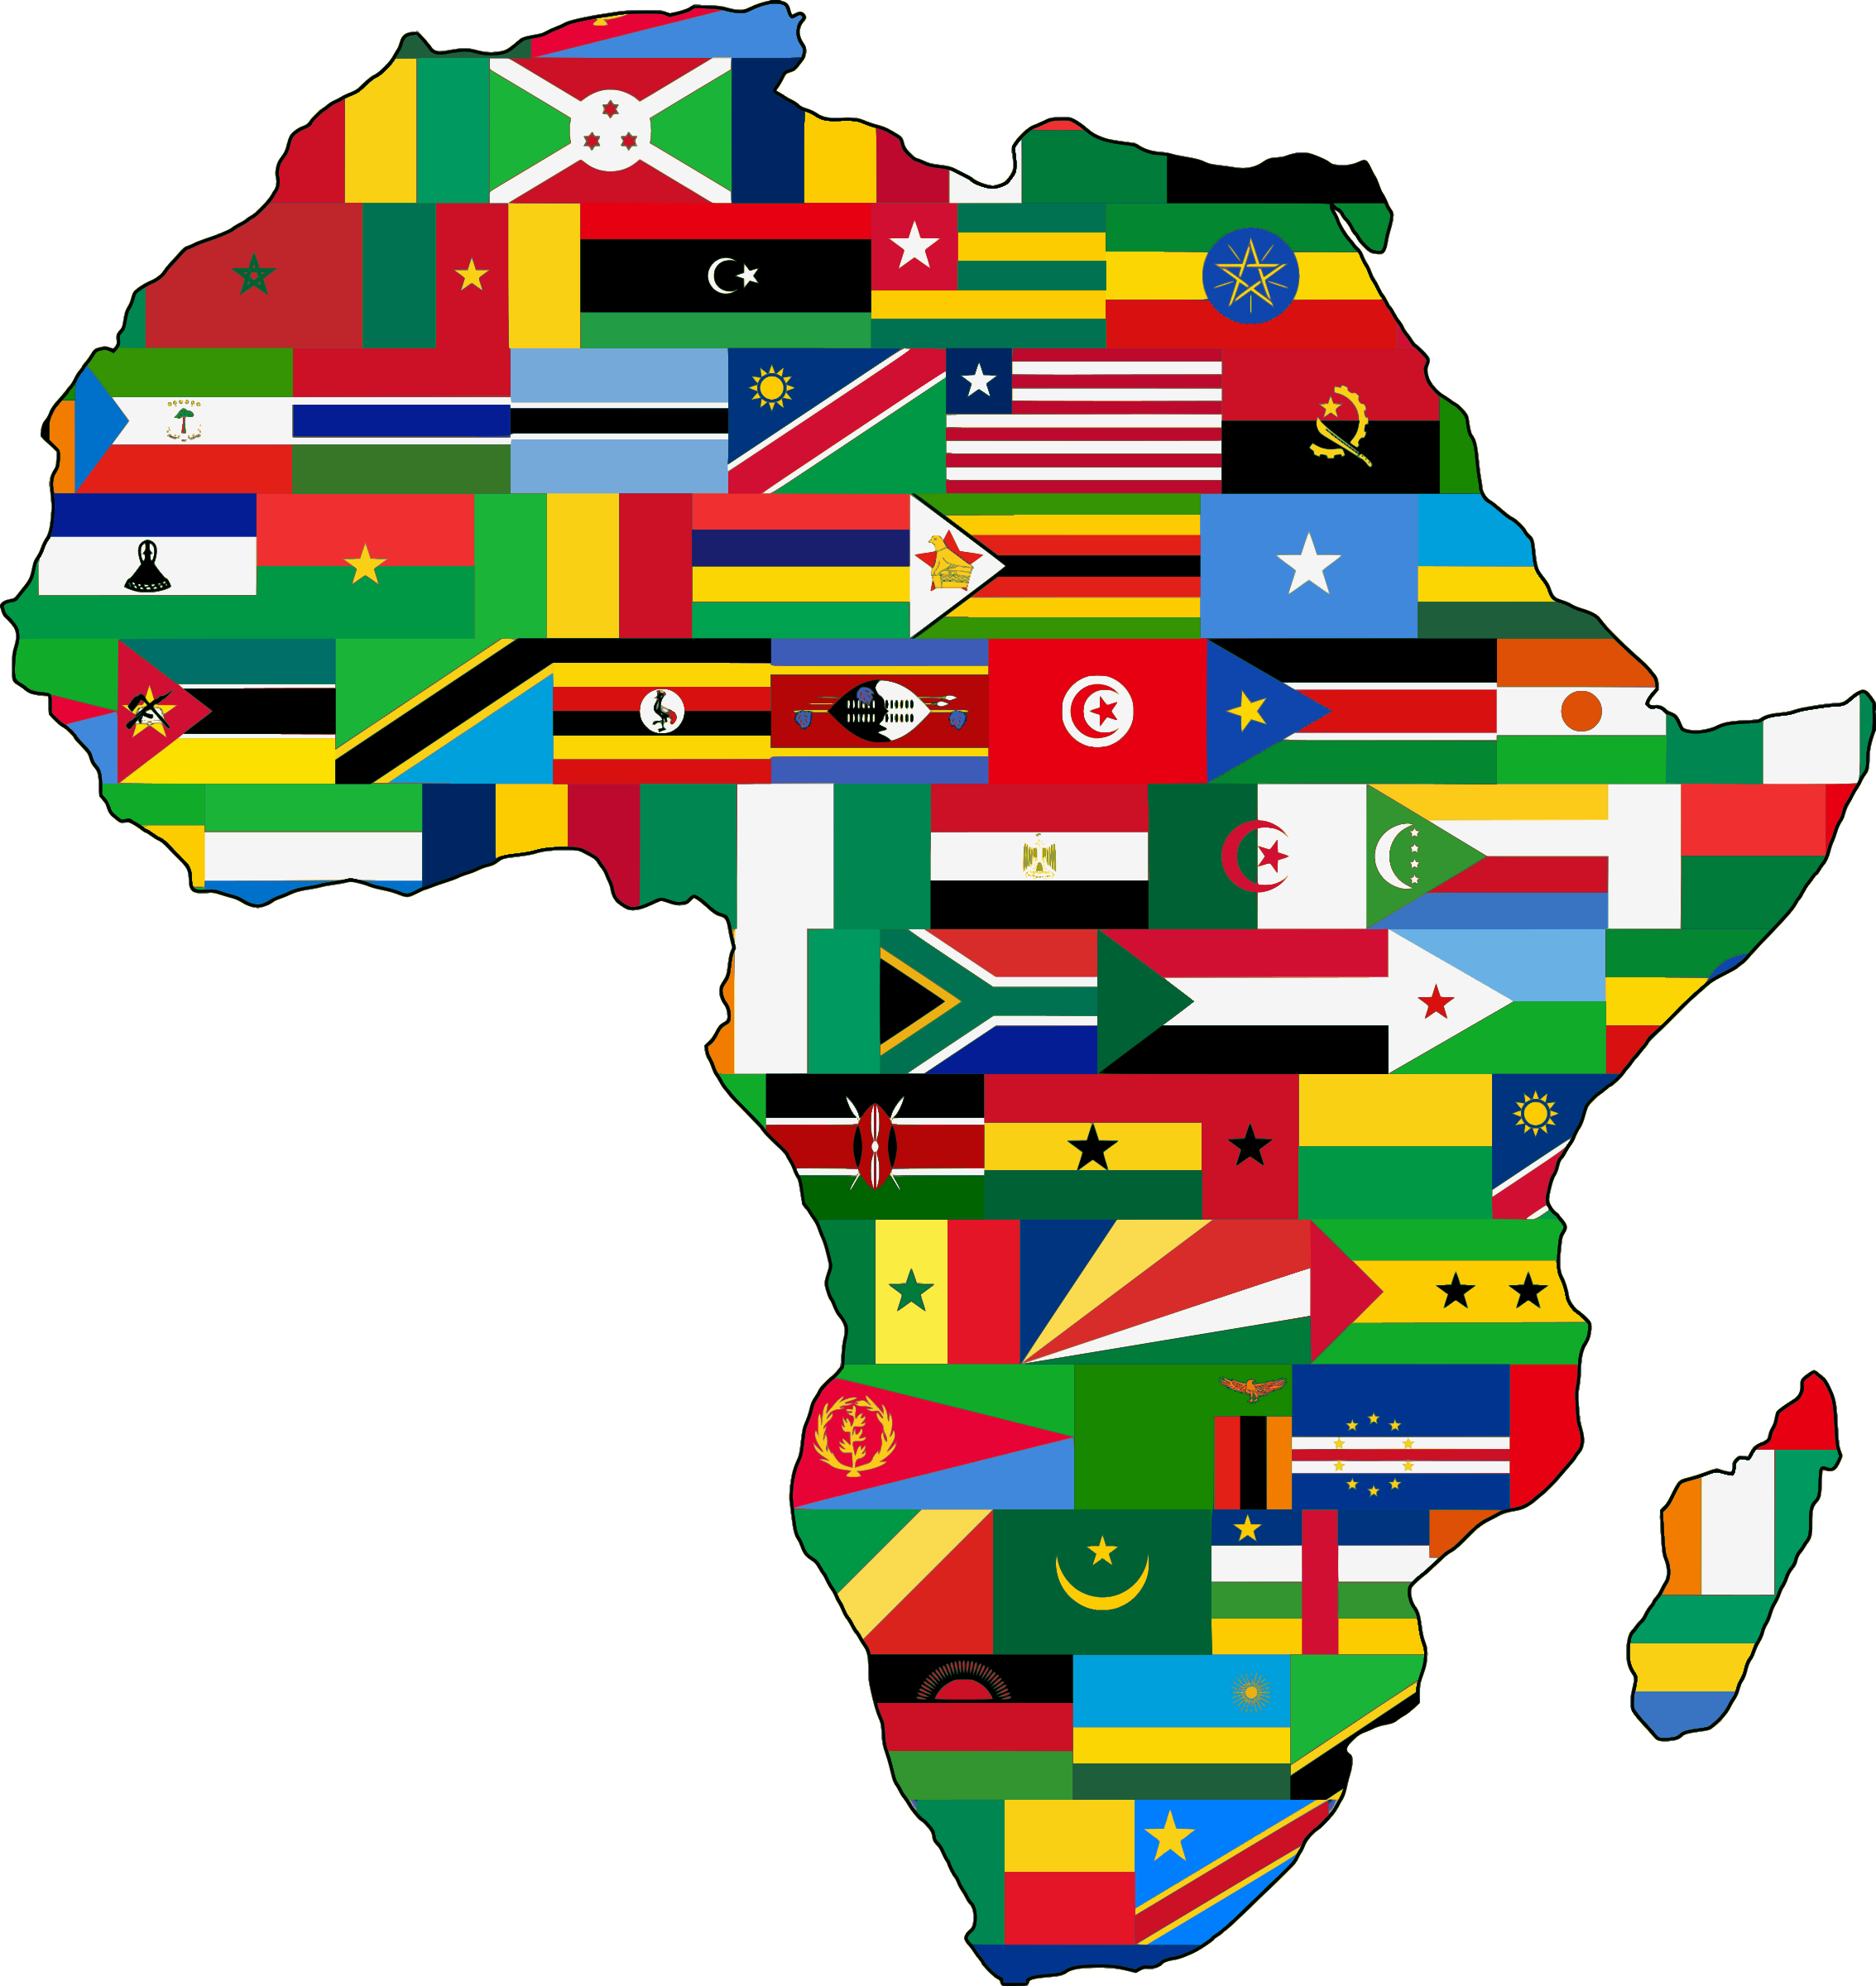 America losing money clipart vector free library Is Africa The Next China? - Vladimir Ribakov vector free library